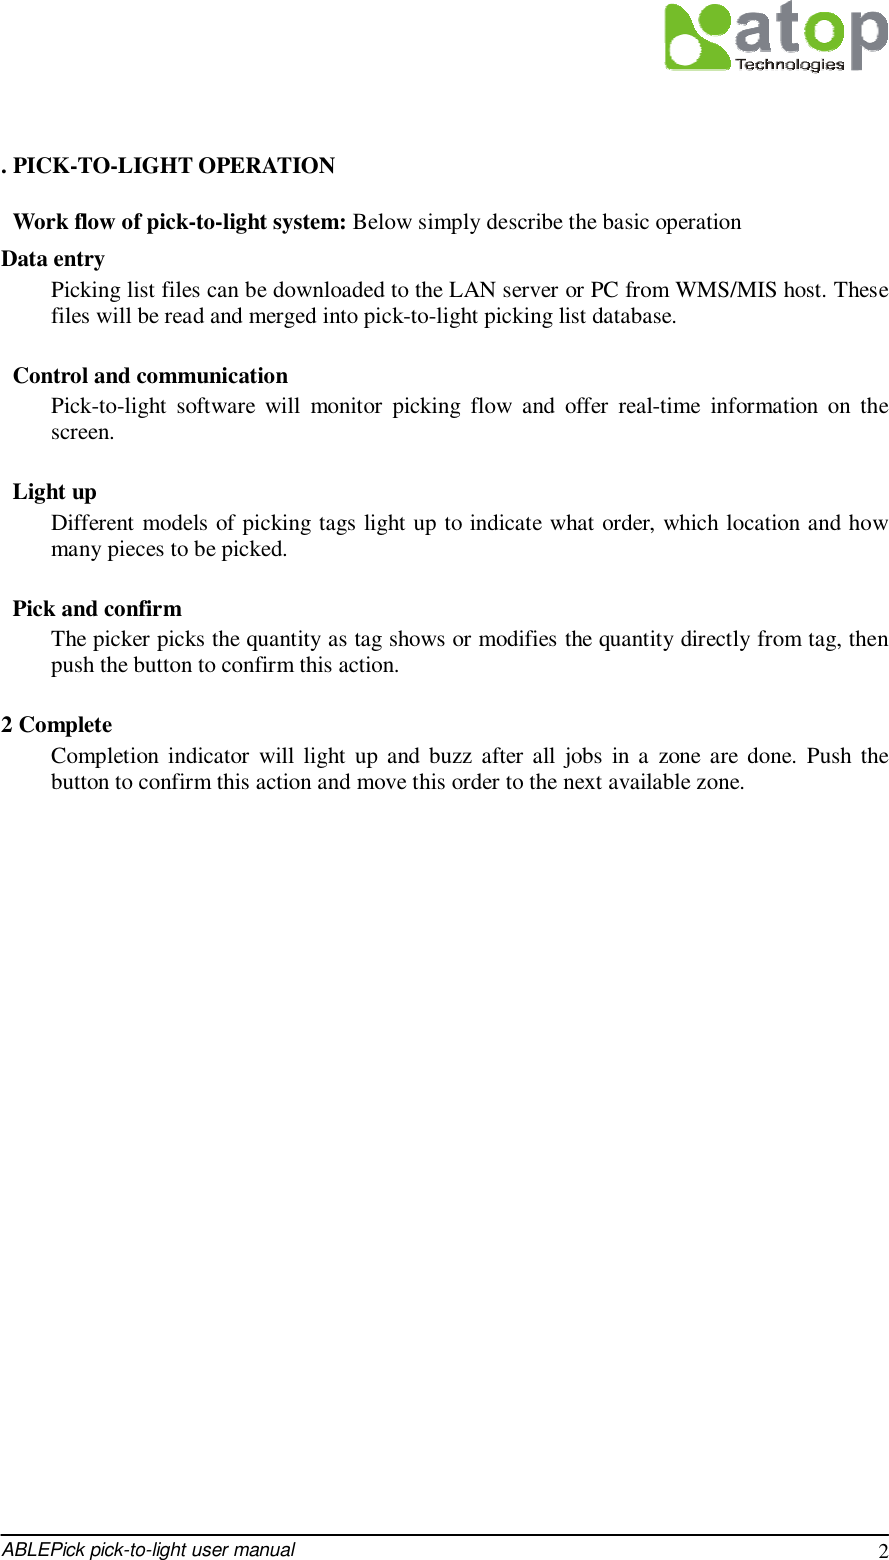 ABLEPick pick-to-light user manual 2   . PICK-TO-LIGHT OPERATION  Work flow of pick-to-light system: Below simply describe the basic operation  Data entry Picking list files can be downloaded to the LAN server or PC from WMS/MIS host. These files will be read and merged into pick-to-light picking list database.   Control and communication Pick-to-light software will monitor picking flow and offer real-time information on the screen.   Light up Different models of picking tags light up to indicate what order, which location and how many pieces to be picked.   Pick and confirm The picker picks the quantity as tag shows or modifies the quantity directly from tag, then push the button to confirm this action.  2 Complete Completion indicator will light up and buzz after all jobs in a zone are done. Push the button to confirm this action and move this order to the next available zone.